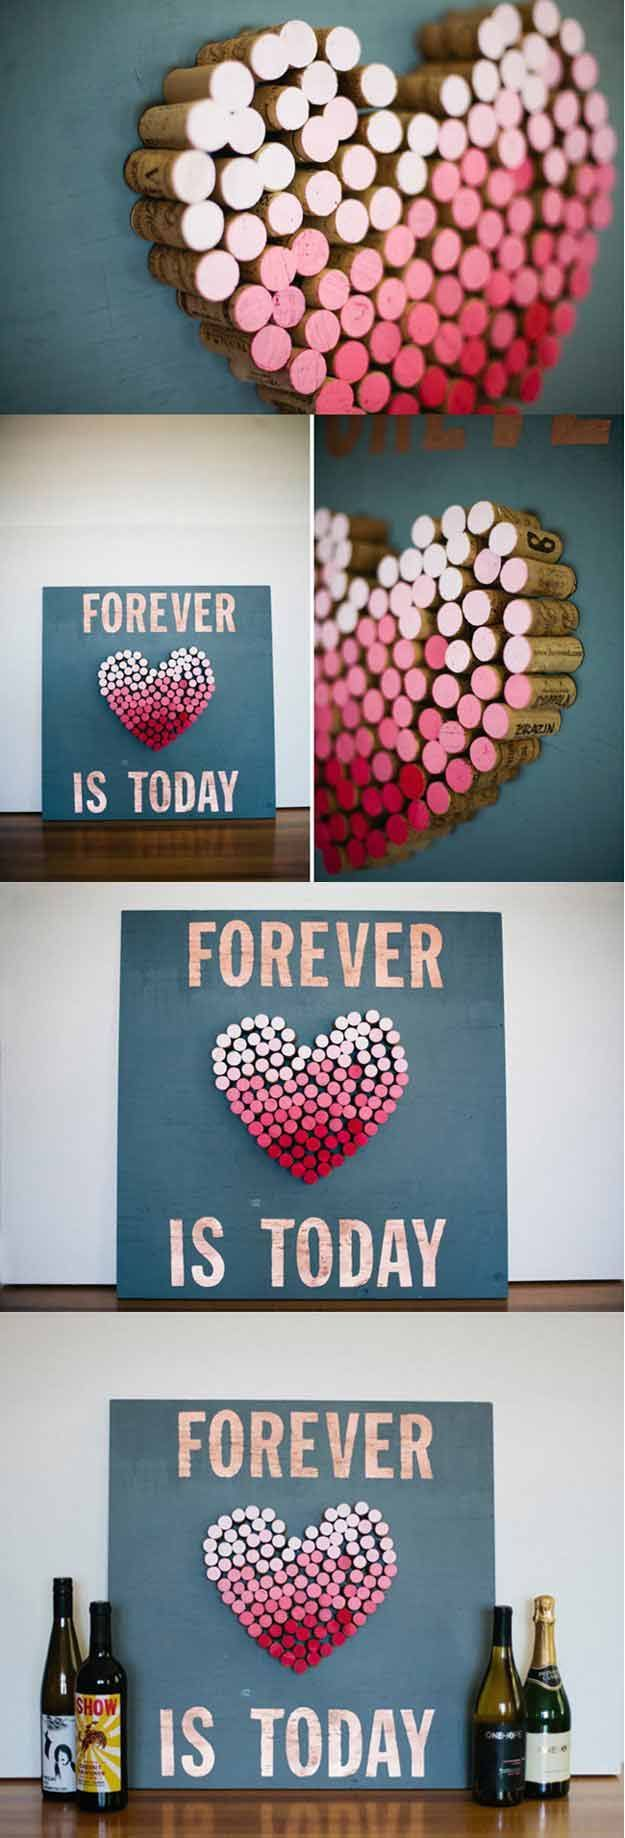 Best Diy Room Decore For Teens Ideas On Pinterest Easy Diy - Diy room decor for teenage girls pinterest